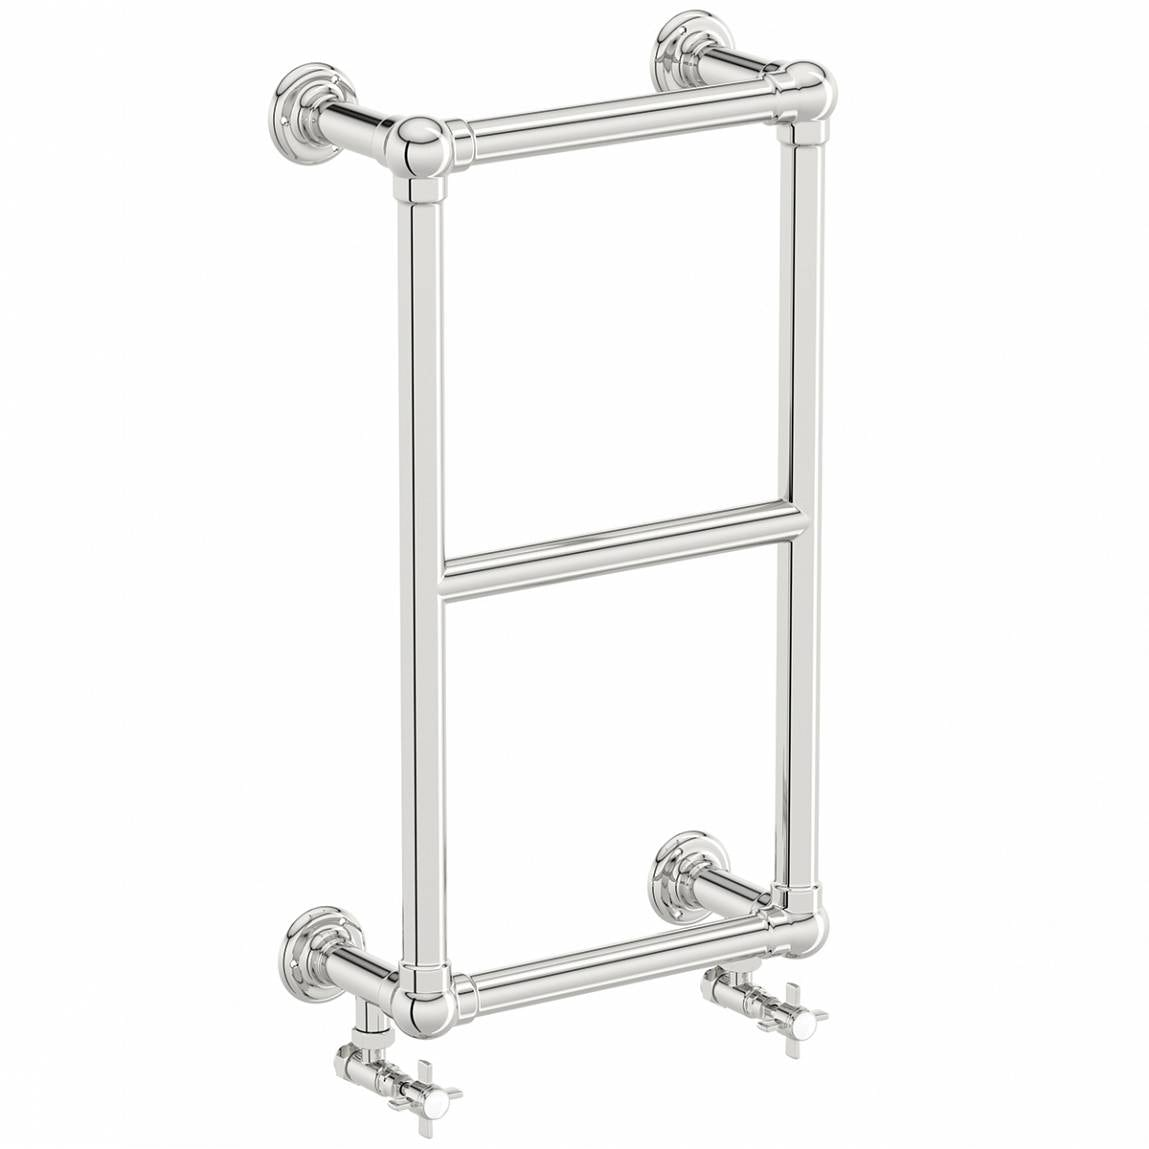 The Bath Co. Winchester wall mounted heated towel rail 700 x 400 offer pack